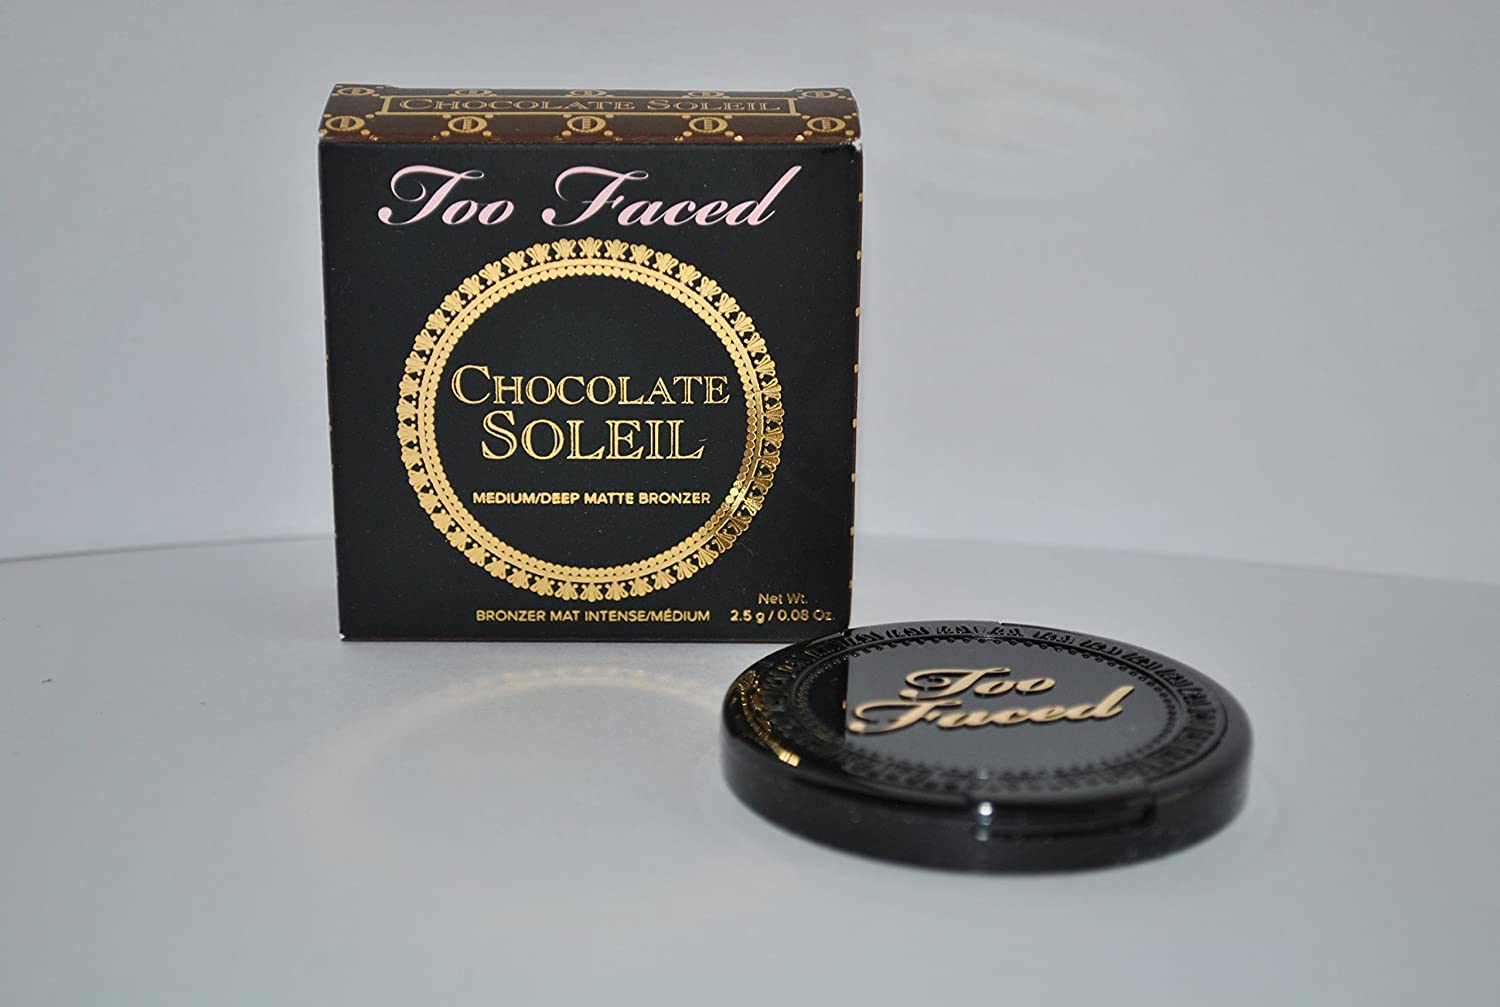 Amazon.com : Too Faced Chocolate Soleil Matte Bronzer - Medium ...